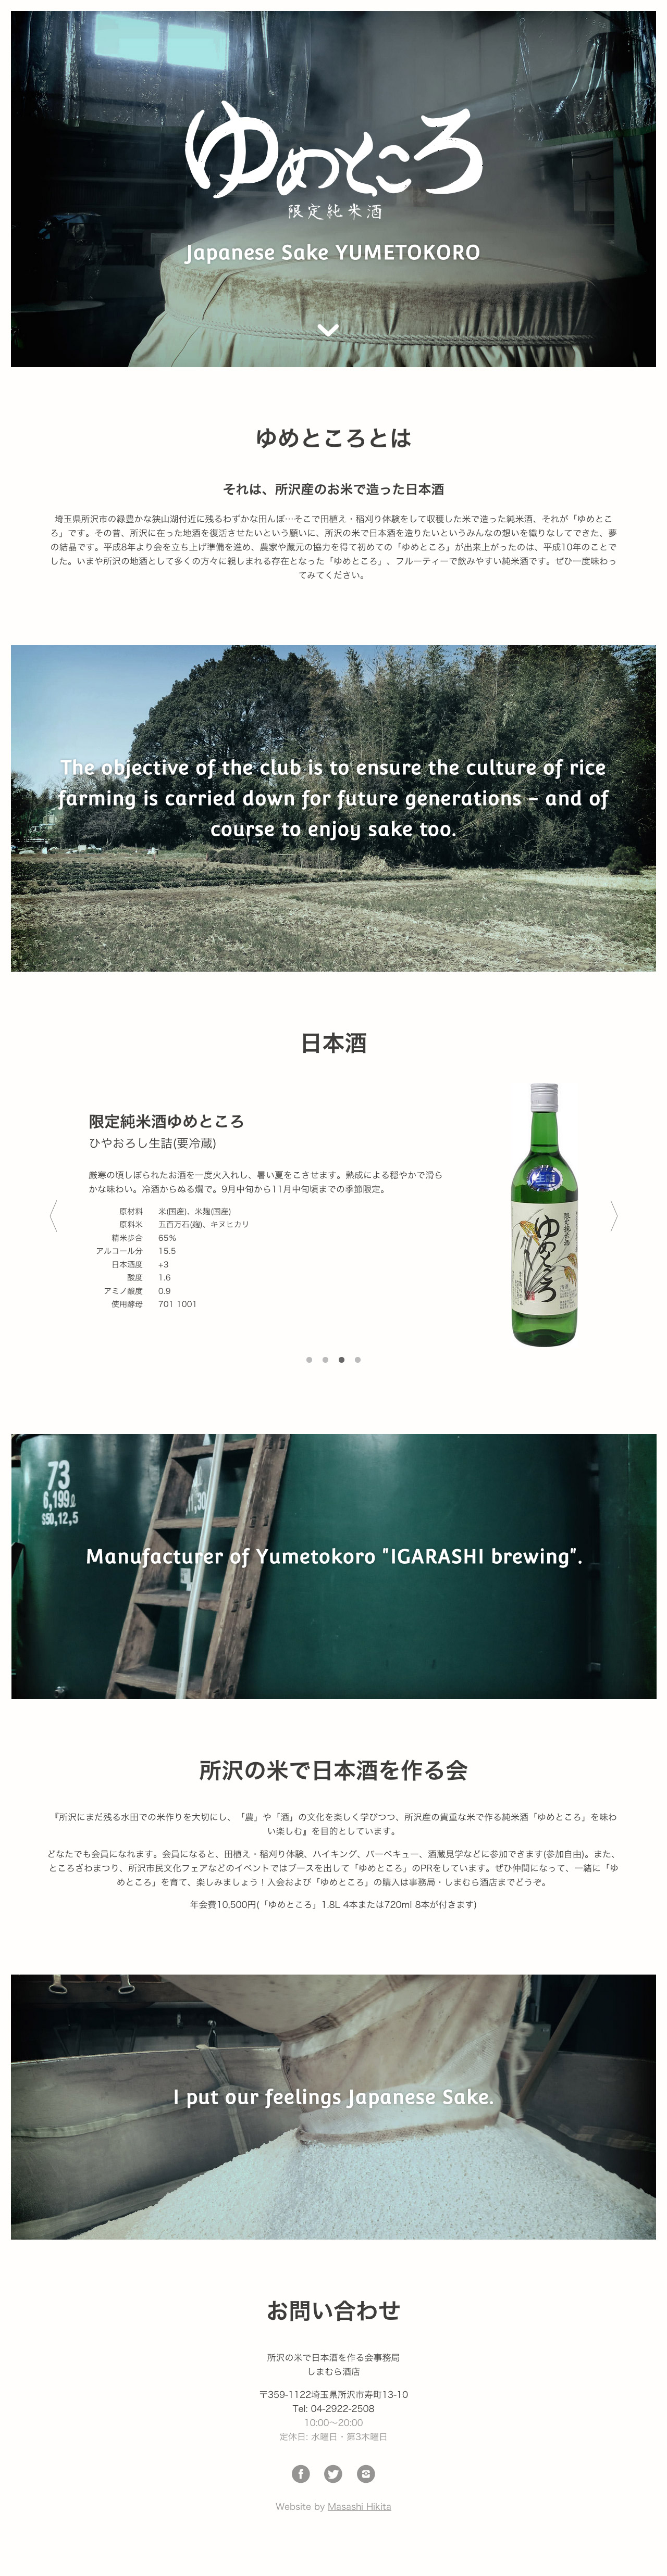 Yumetokoro Website Screenshot